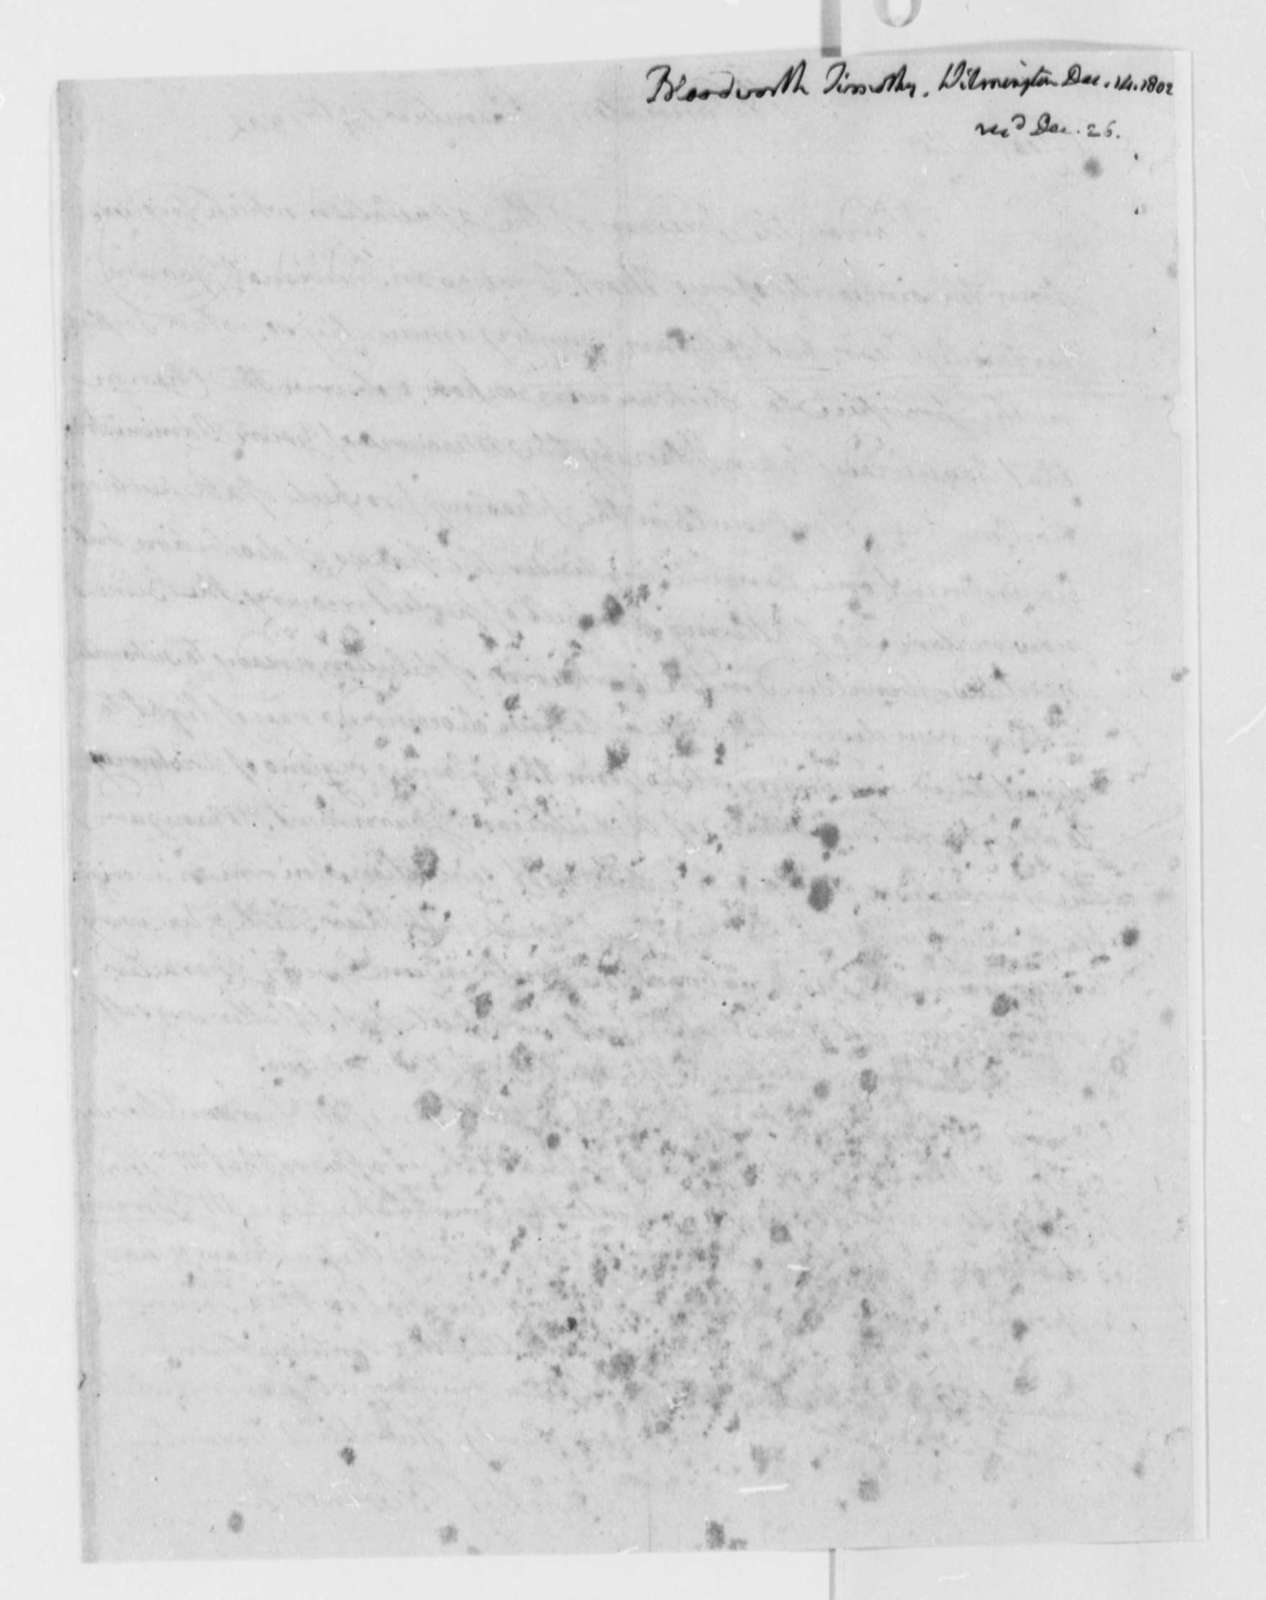 Timothy Bloodworth to Thomas Jefferson, December 14, 1802